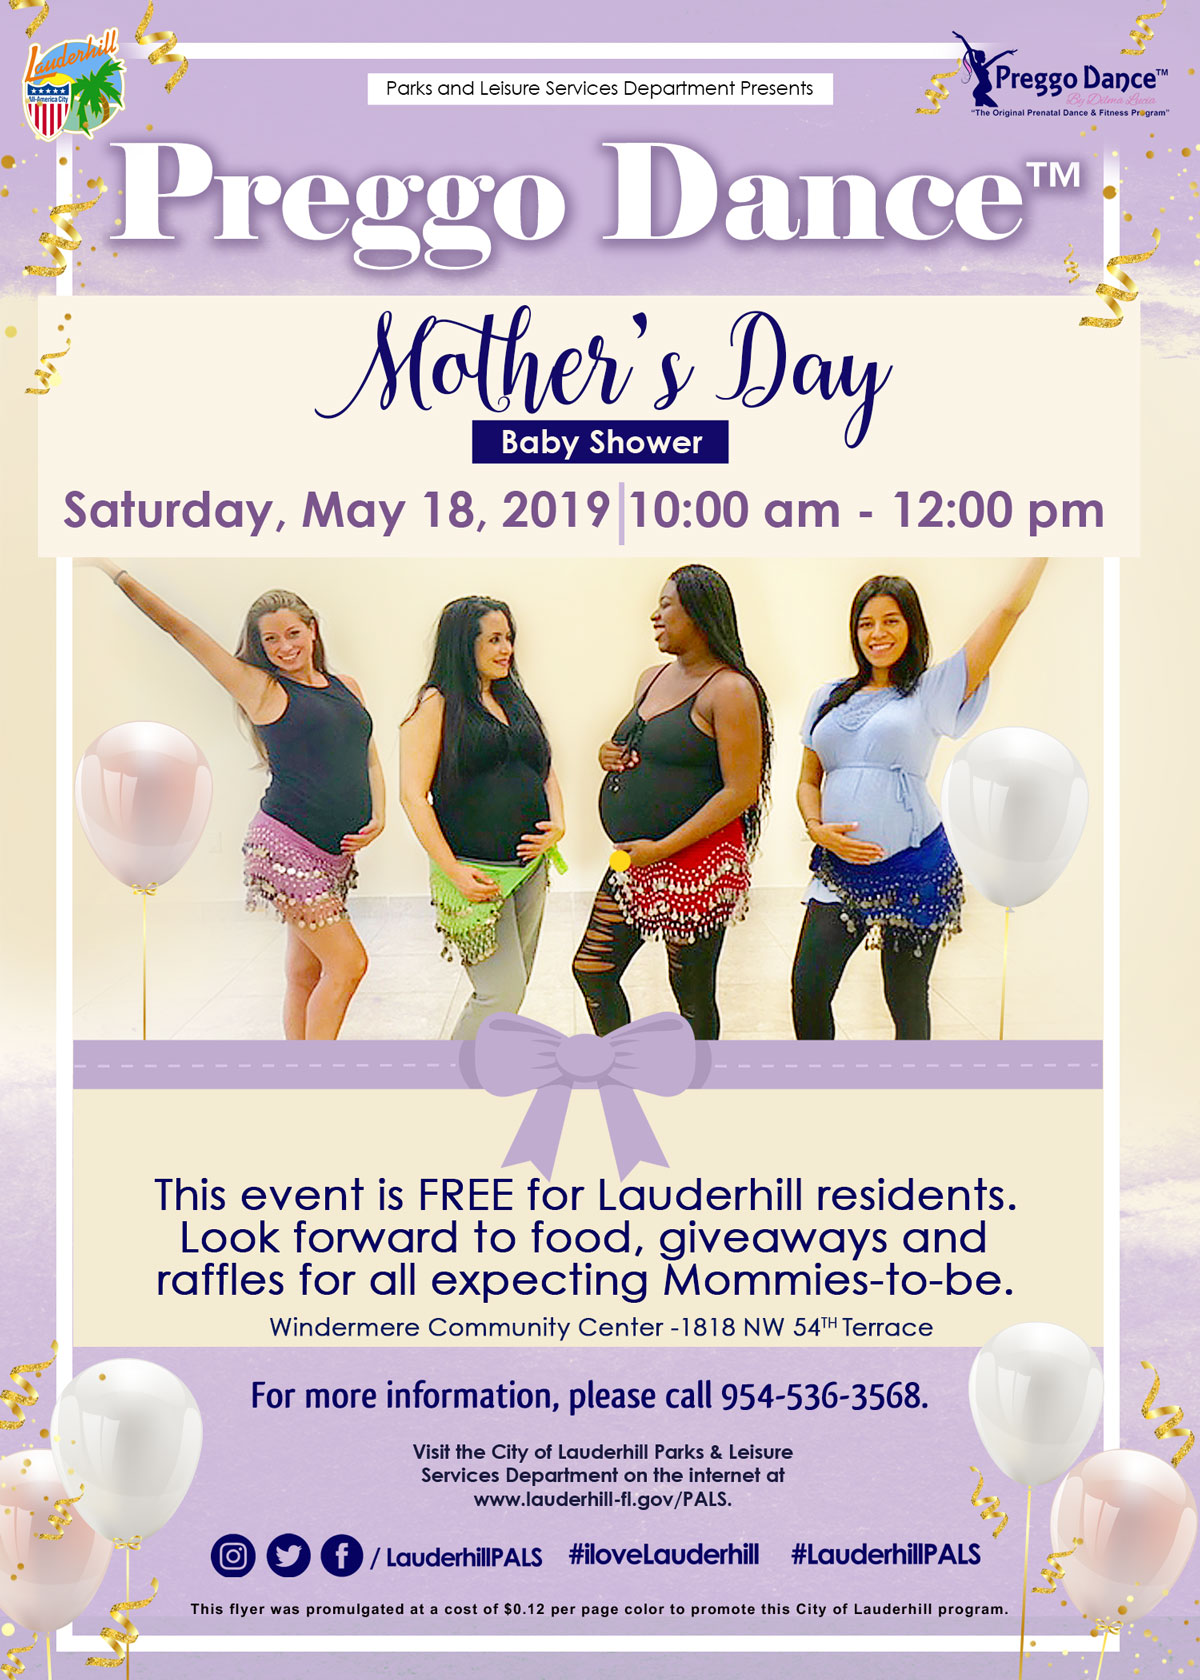 5-18-19 - Preggo Dance Mother's Day Baby Shower at Windermere